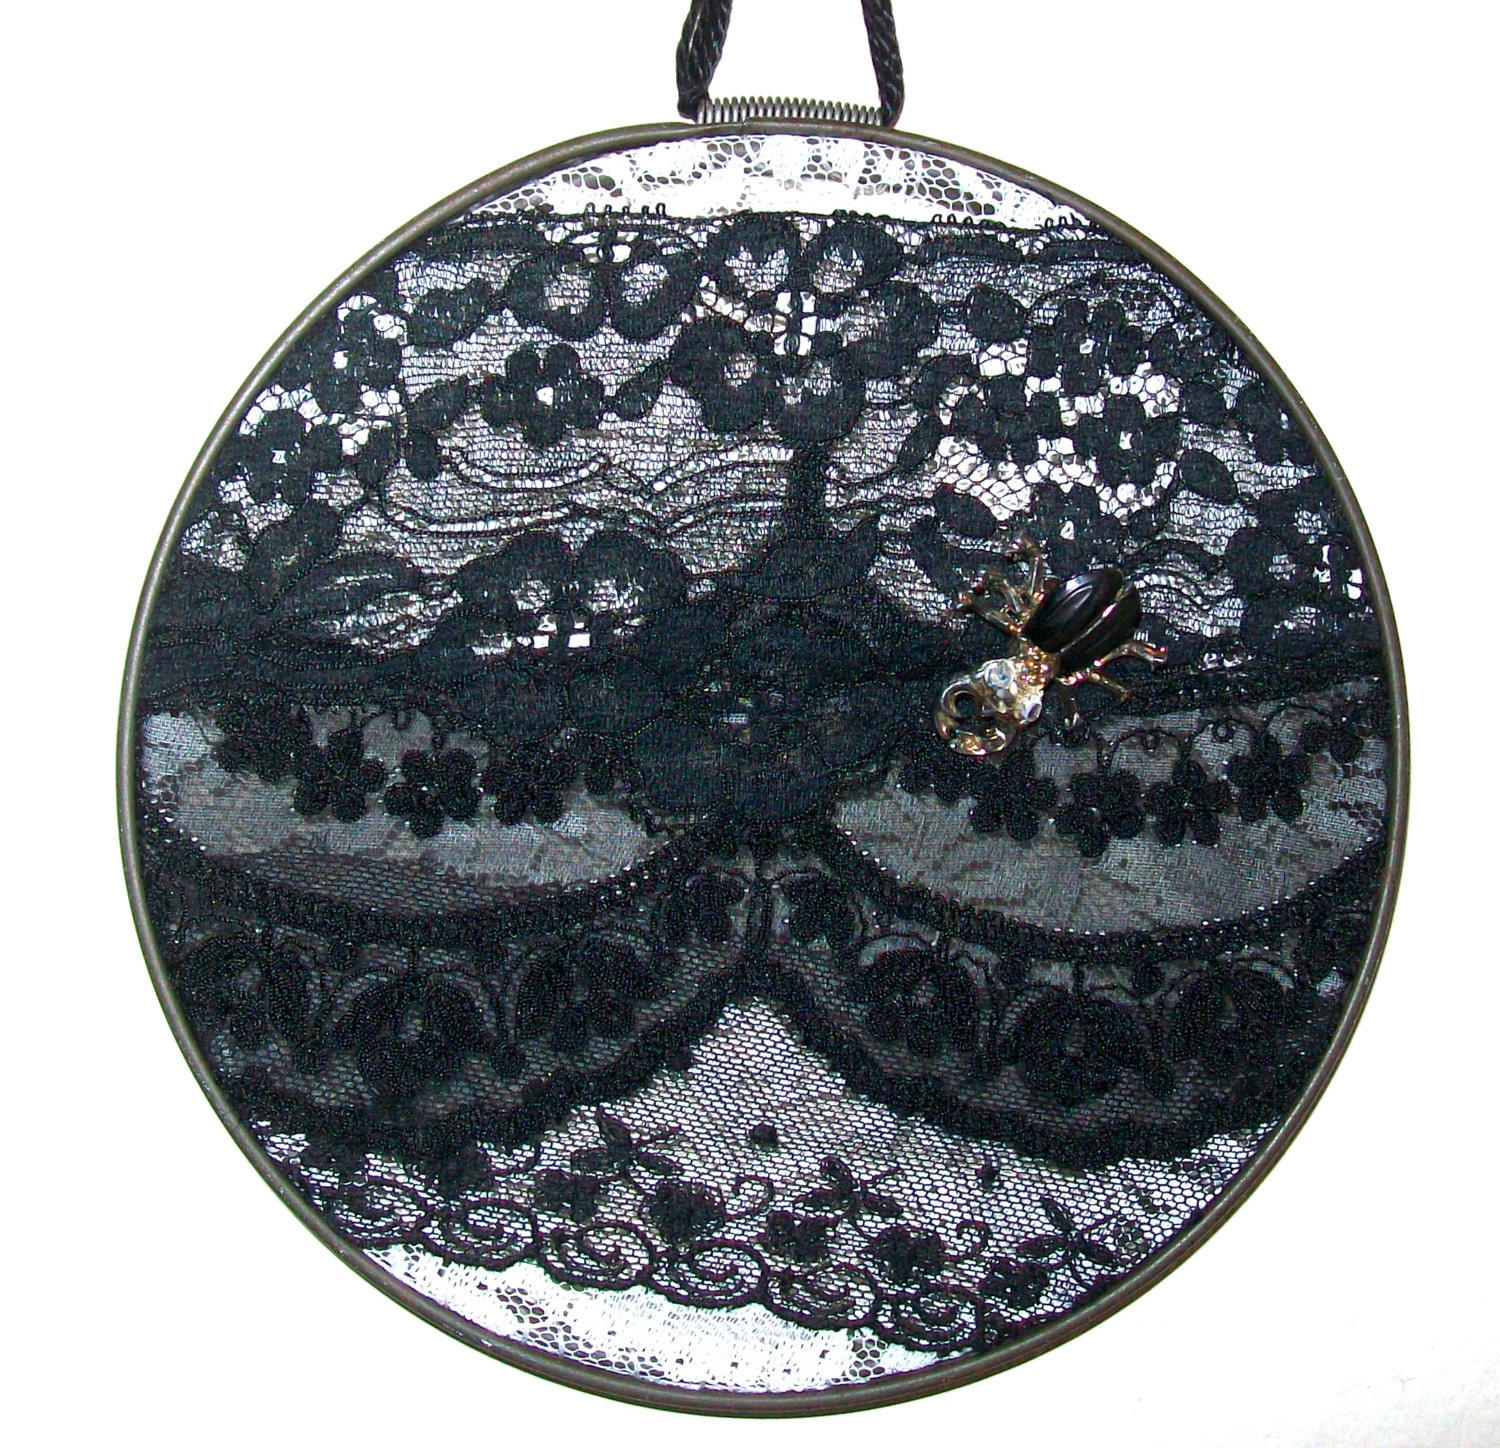 Items similar to embroidery hoop art bug on black lace